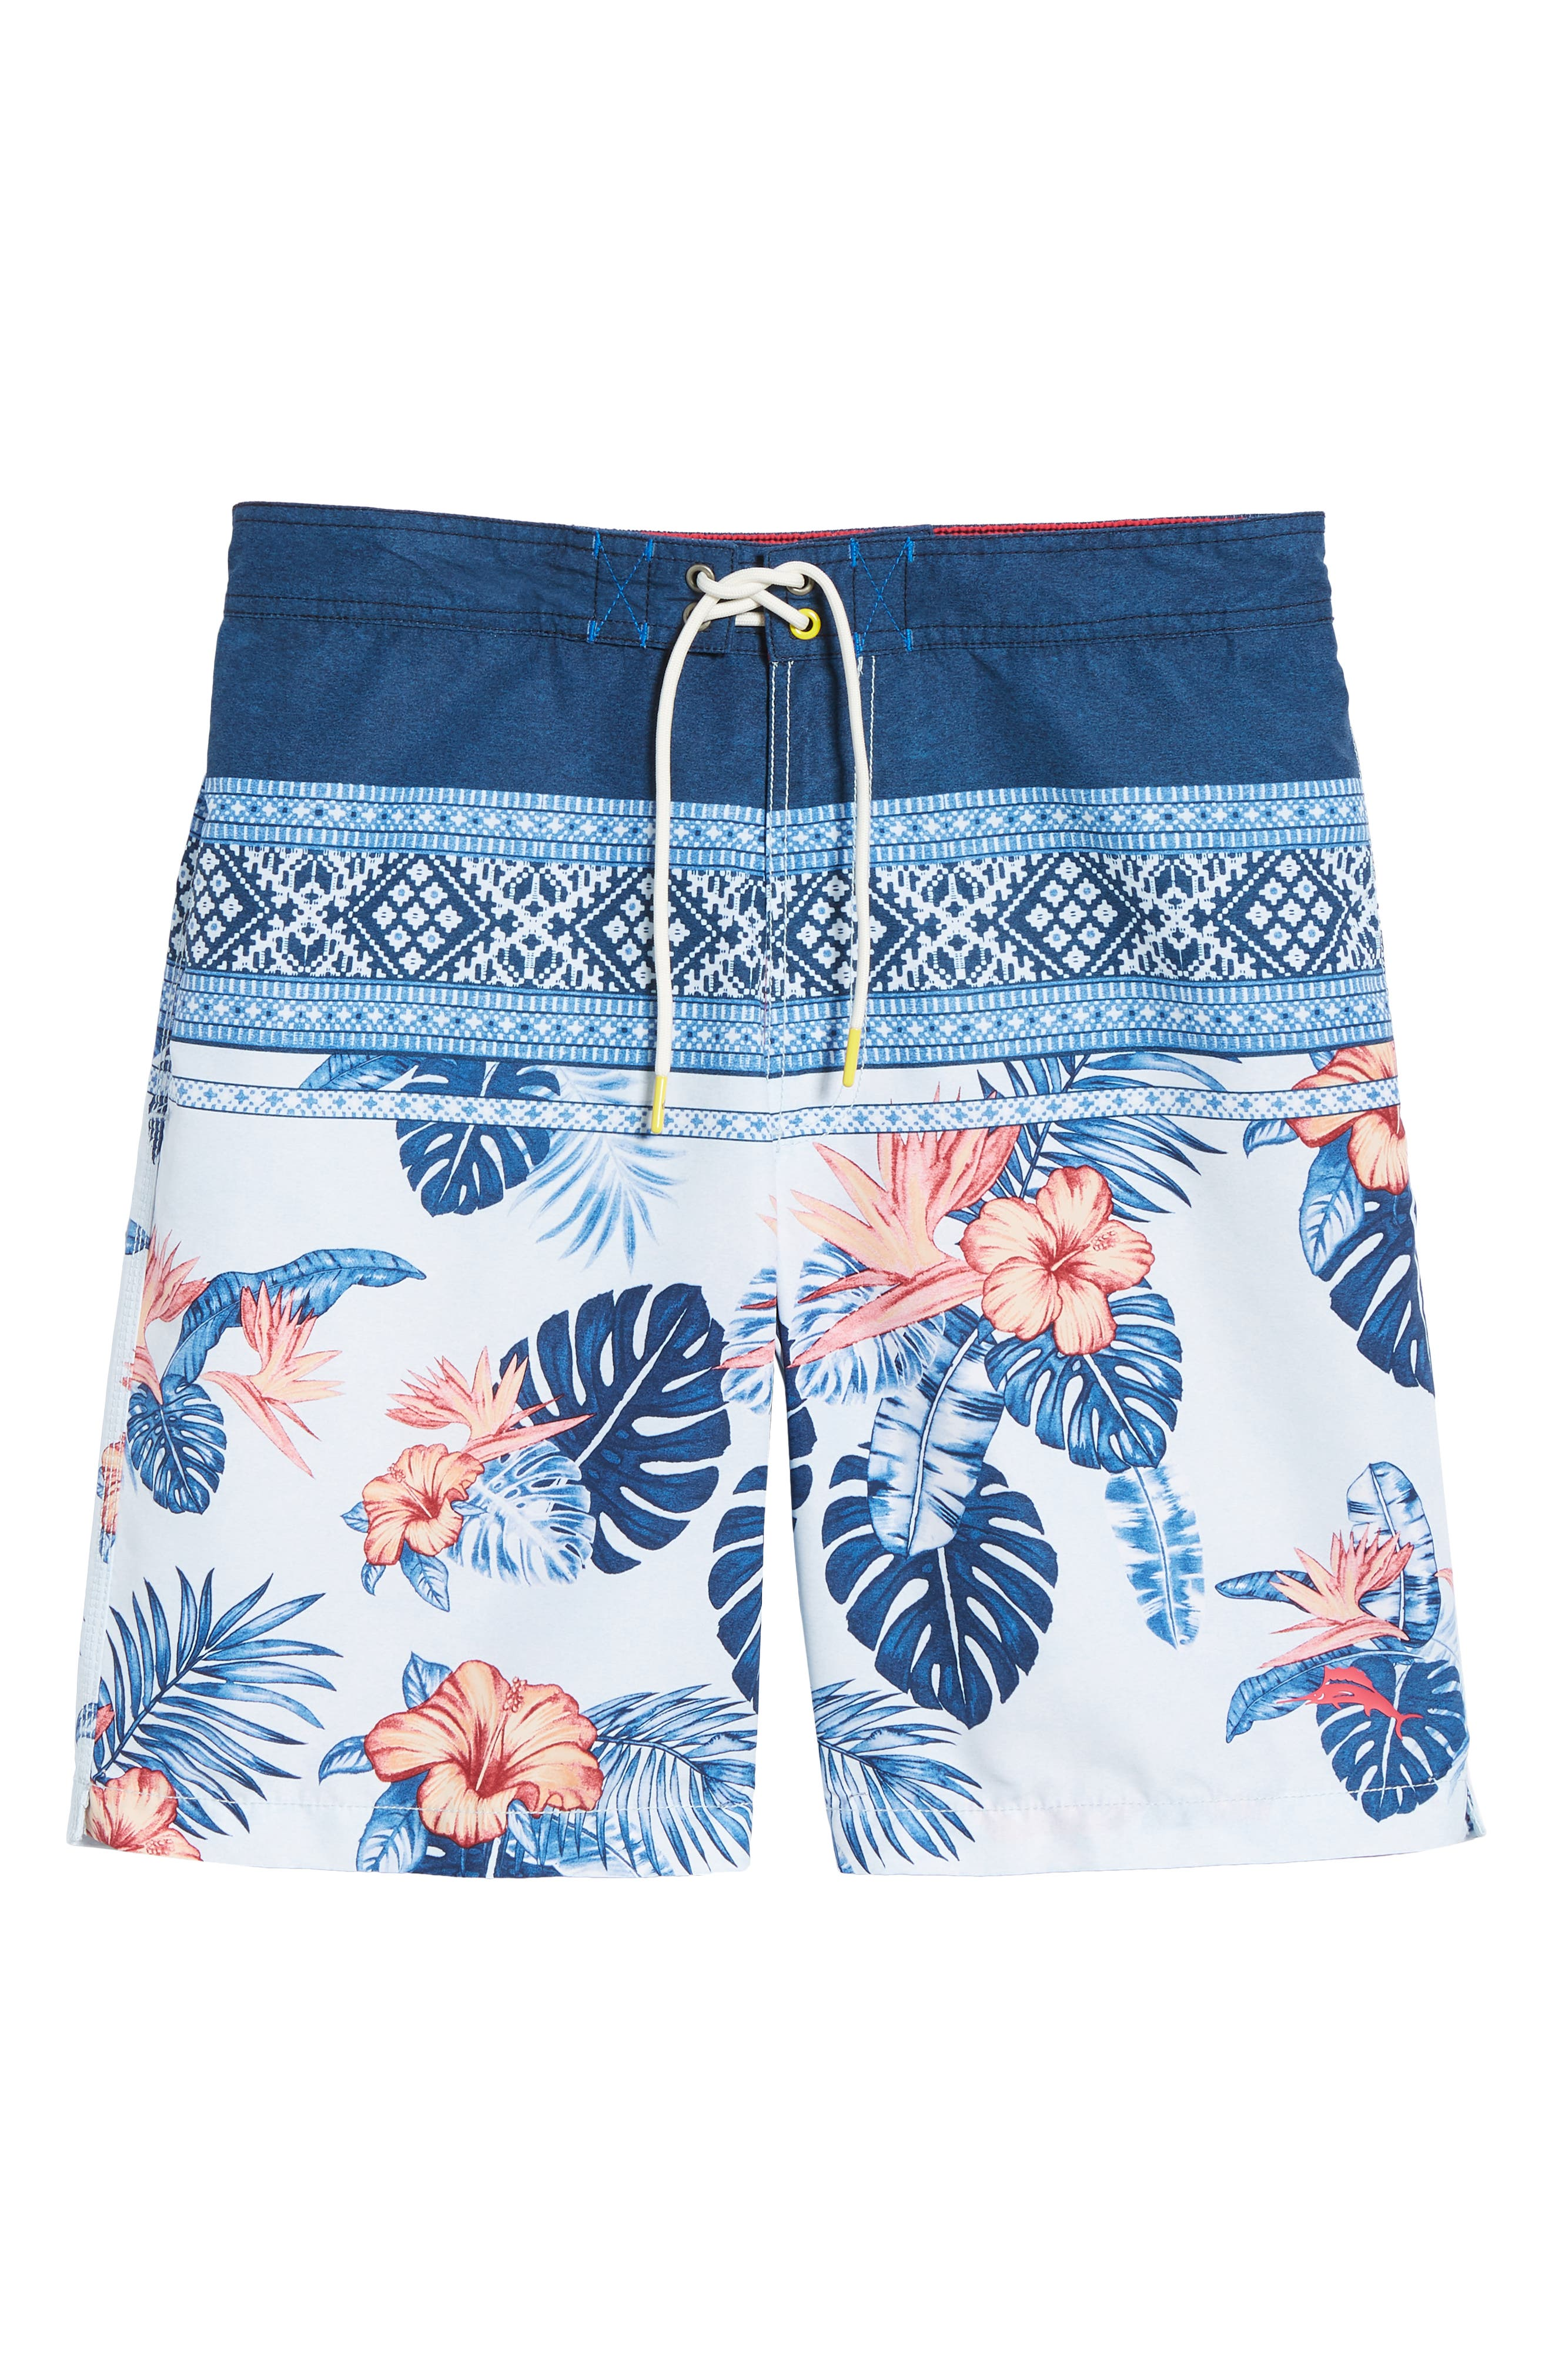 Baja Casa Rosa Board Shorts,                             Alternate thumbnail 6, color,                             401